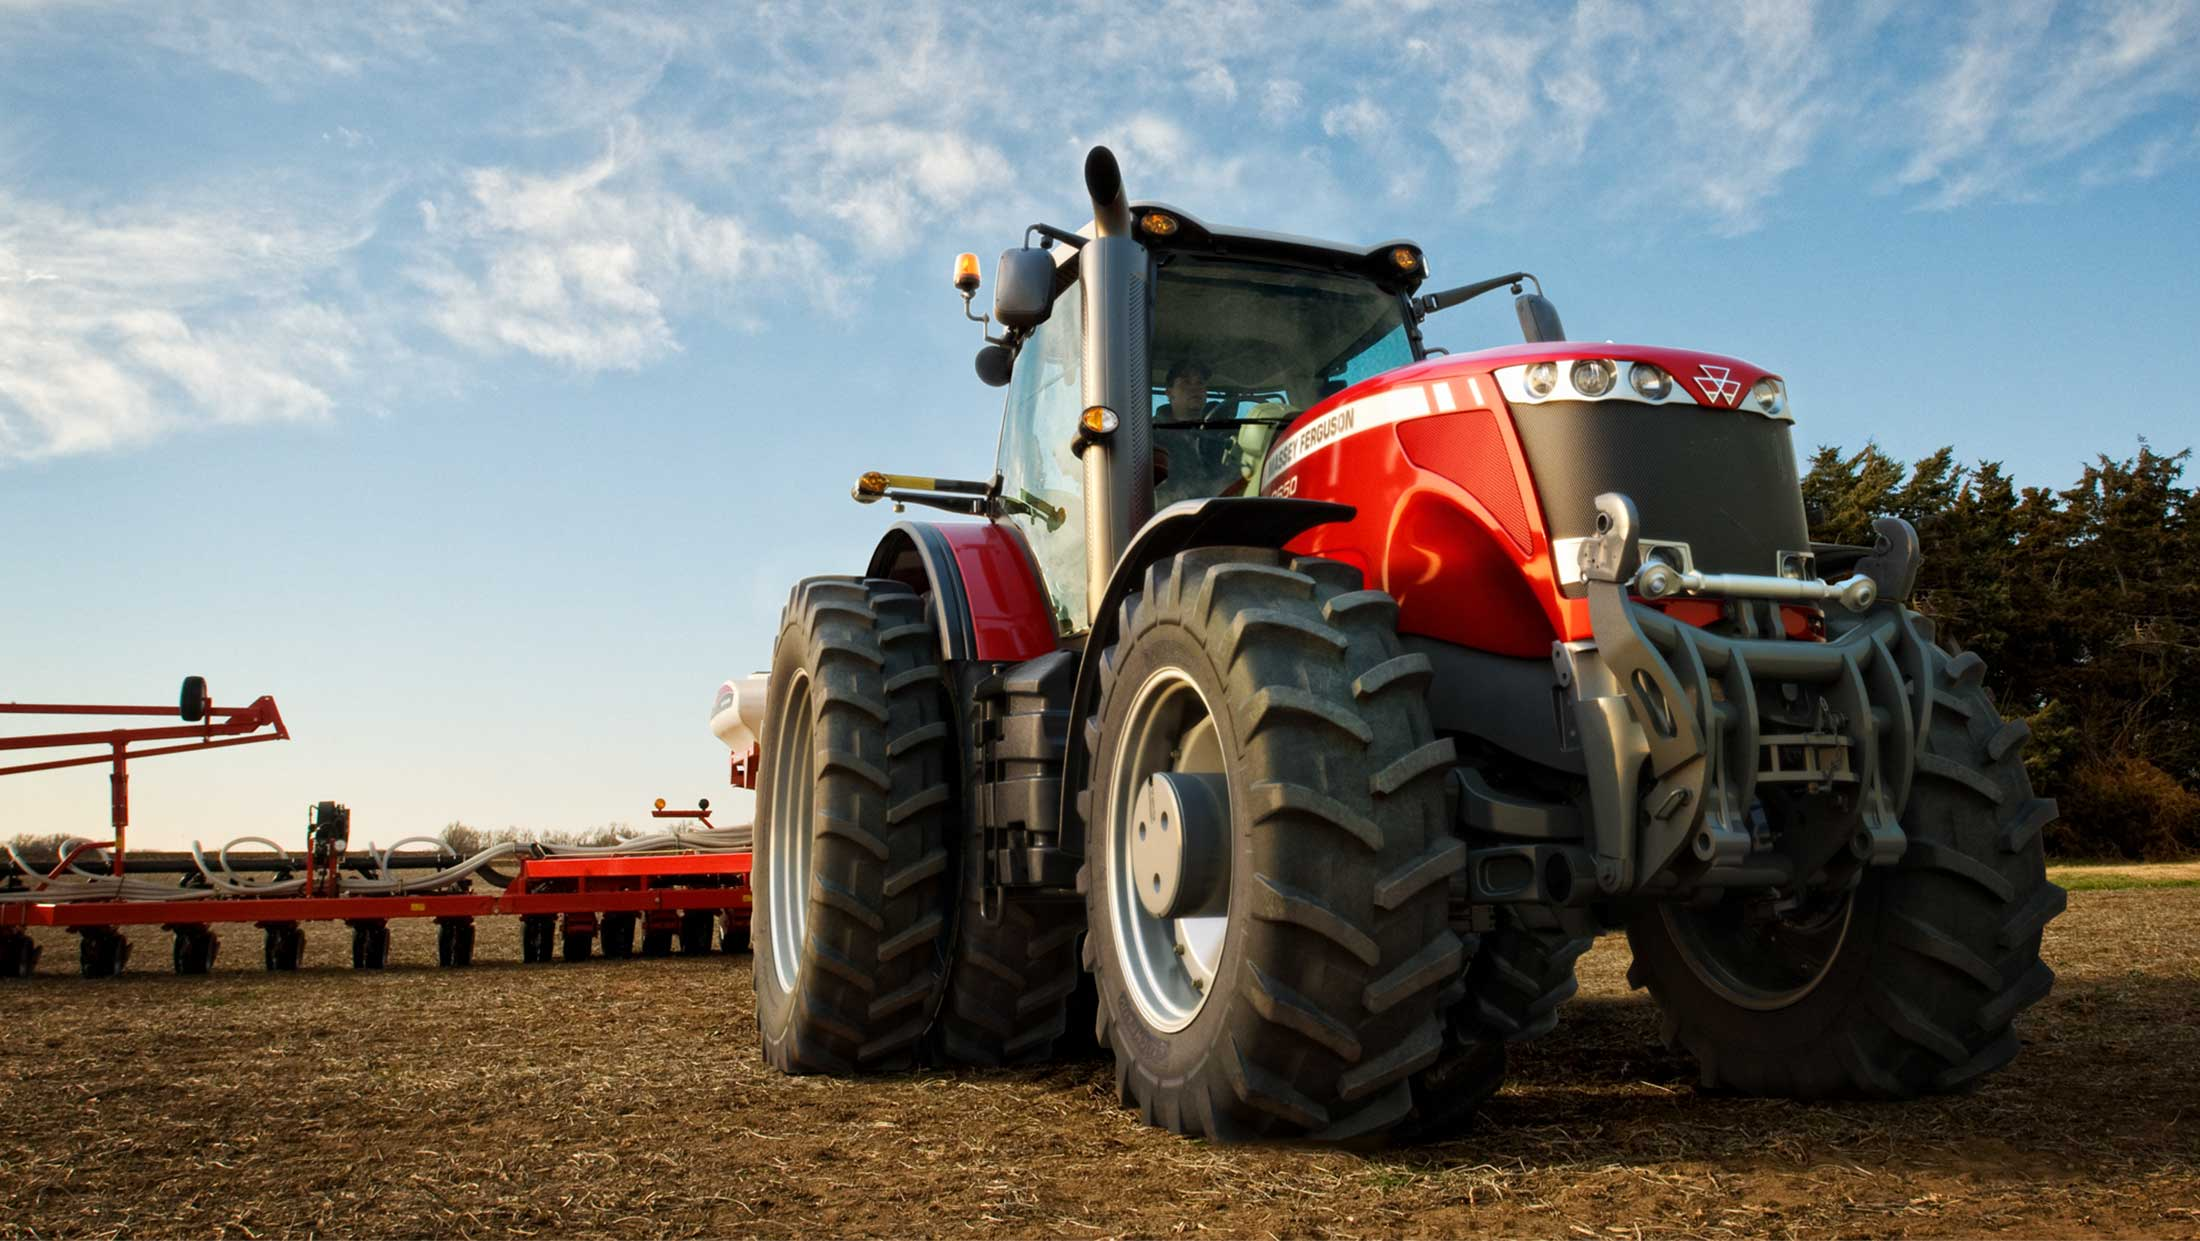 The Massey Ferguson<br/> revolution has arrived at